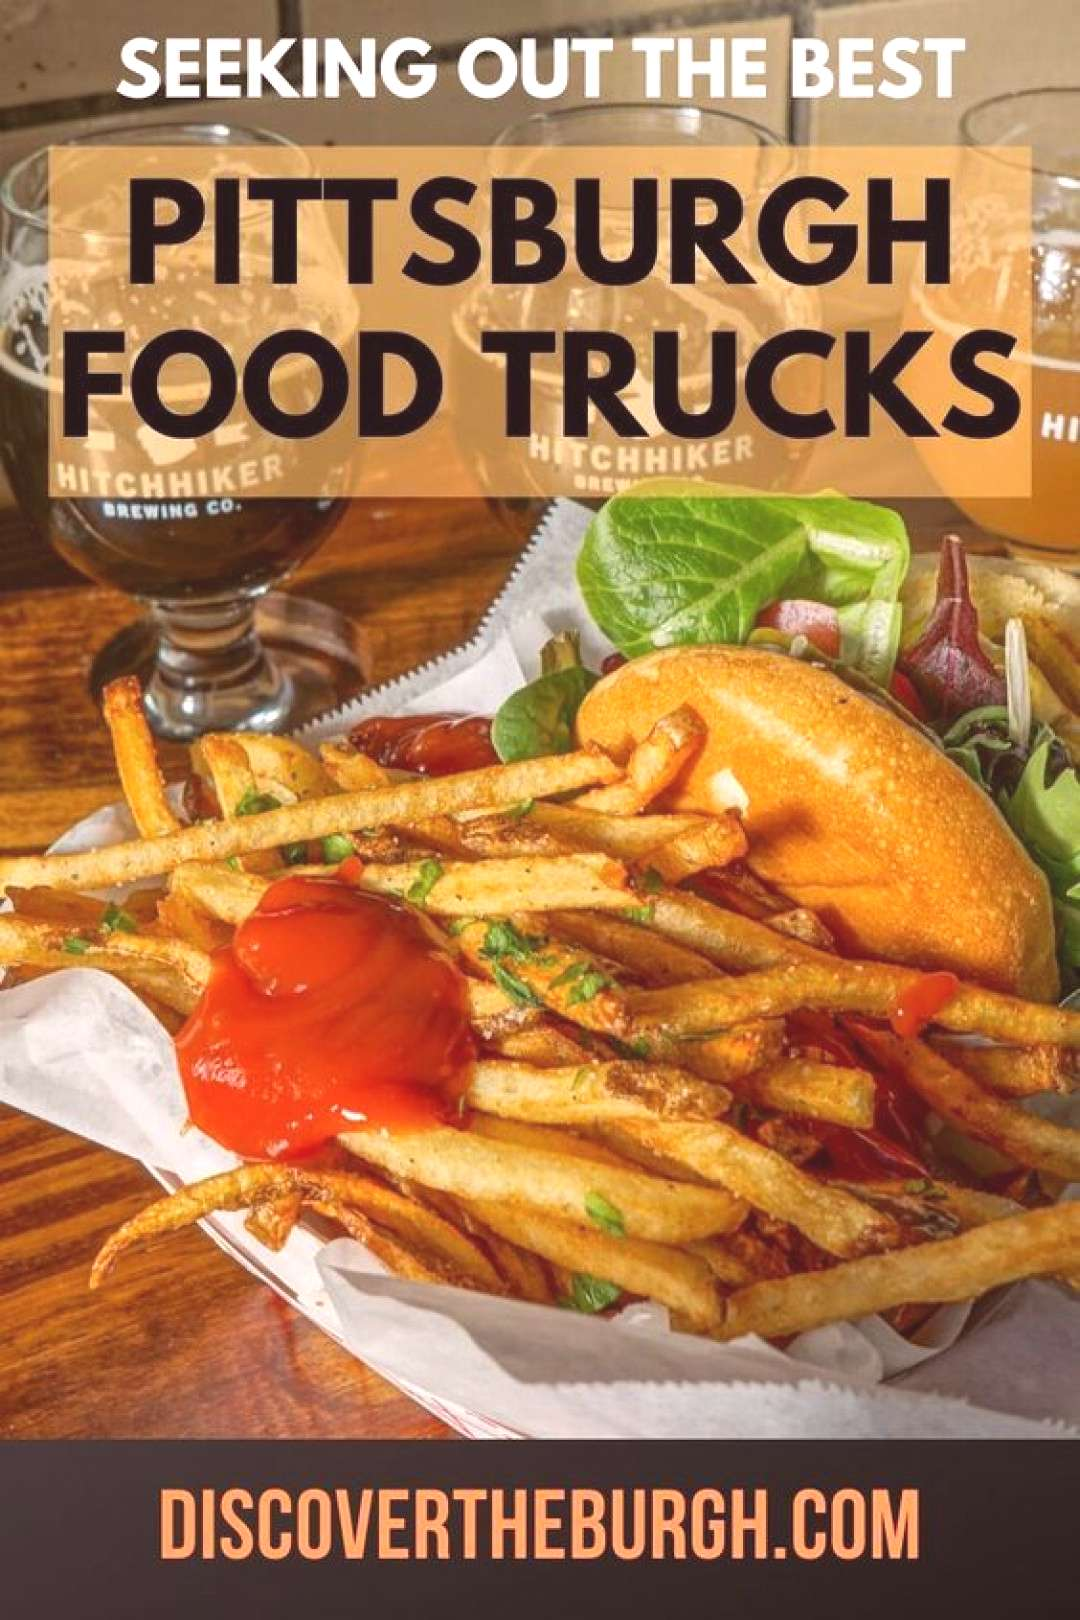 Pittsburgh Food Trucks Guide In need of a Pittsburgh food truck, street food, or other unique food